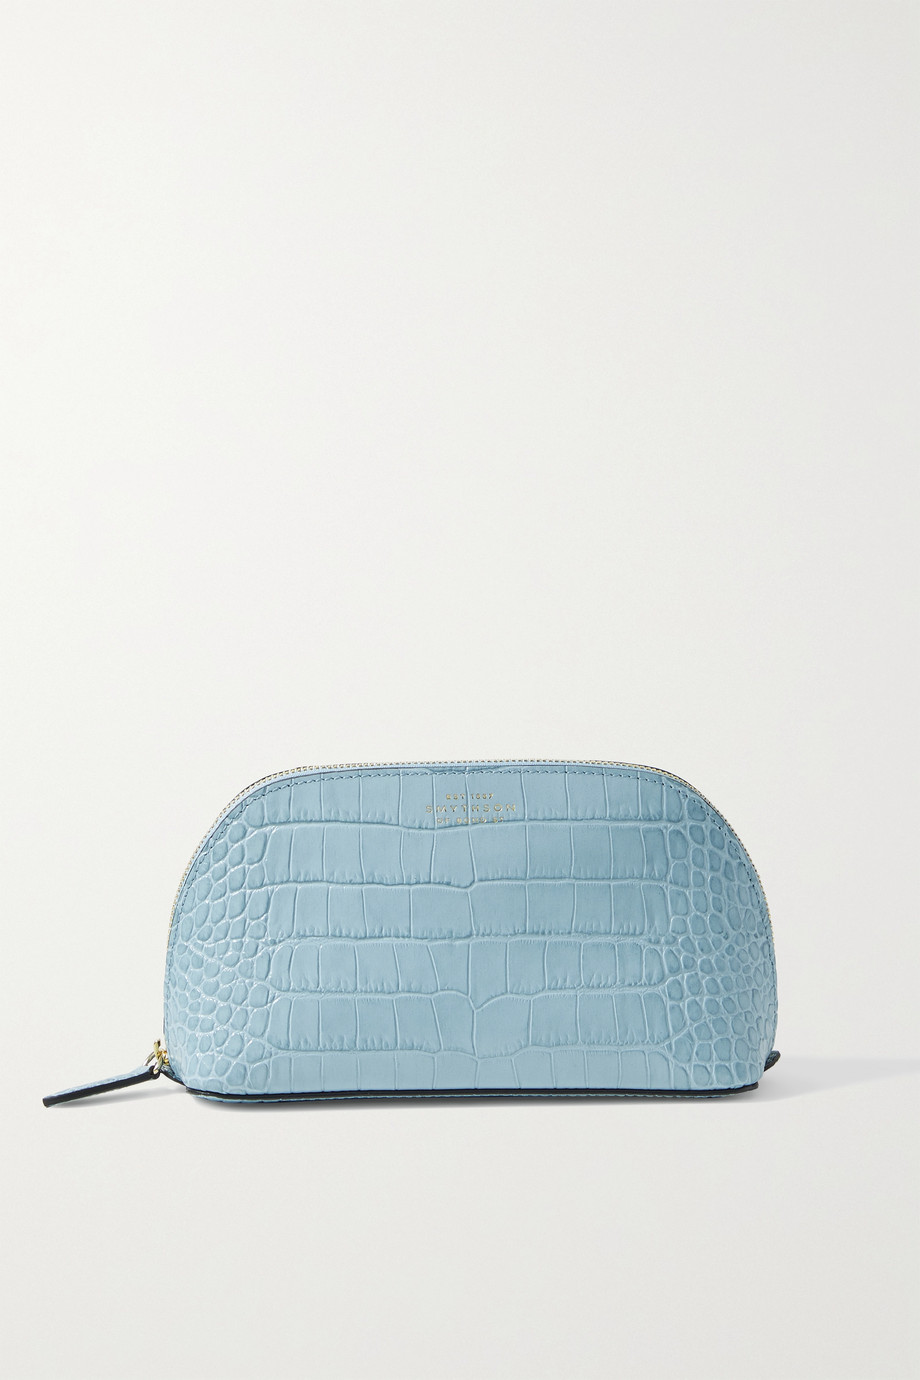 SMYTHSON Mara croc-effect leather cosmetics case